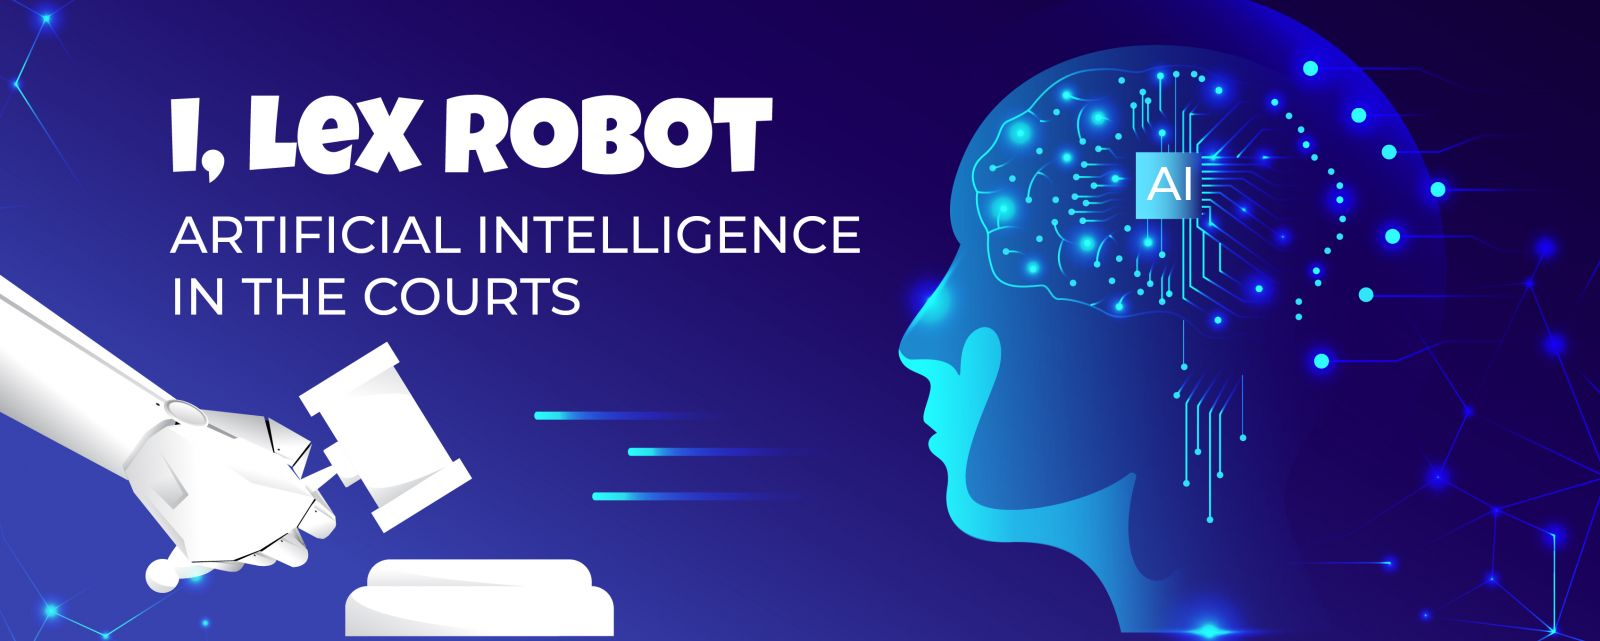 i, Lex Robot – Artificial Intelligence in the Courts